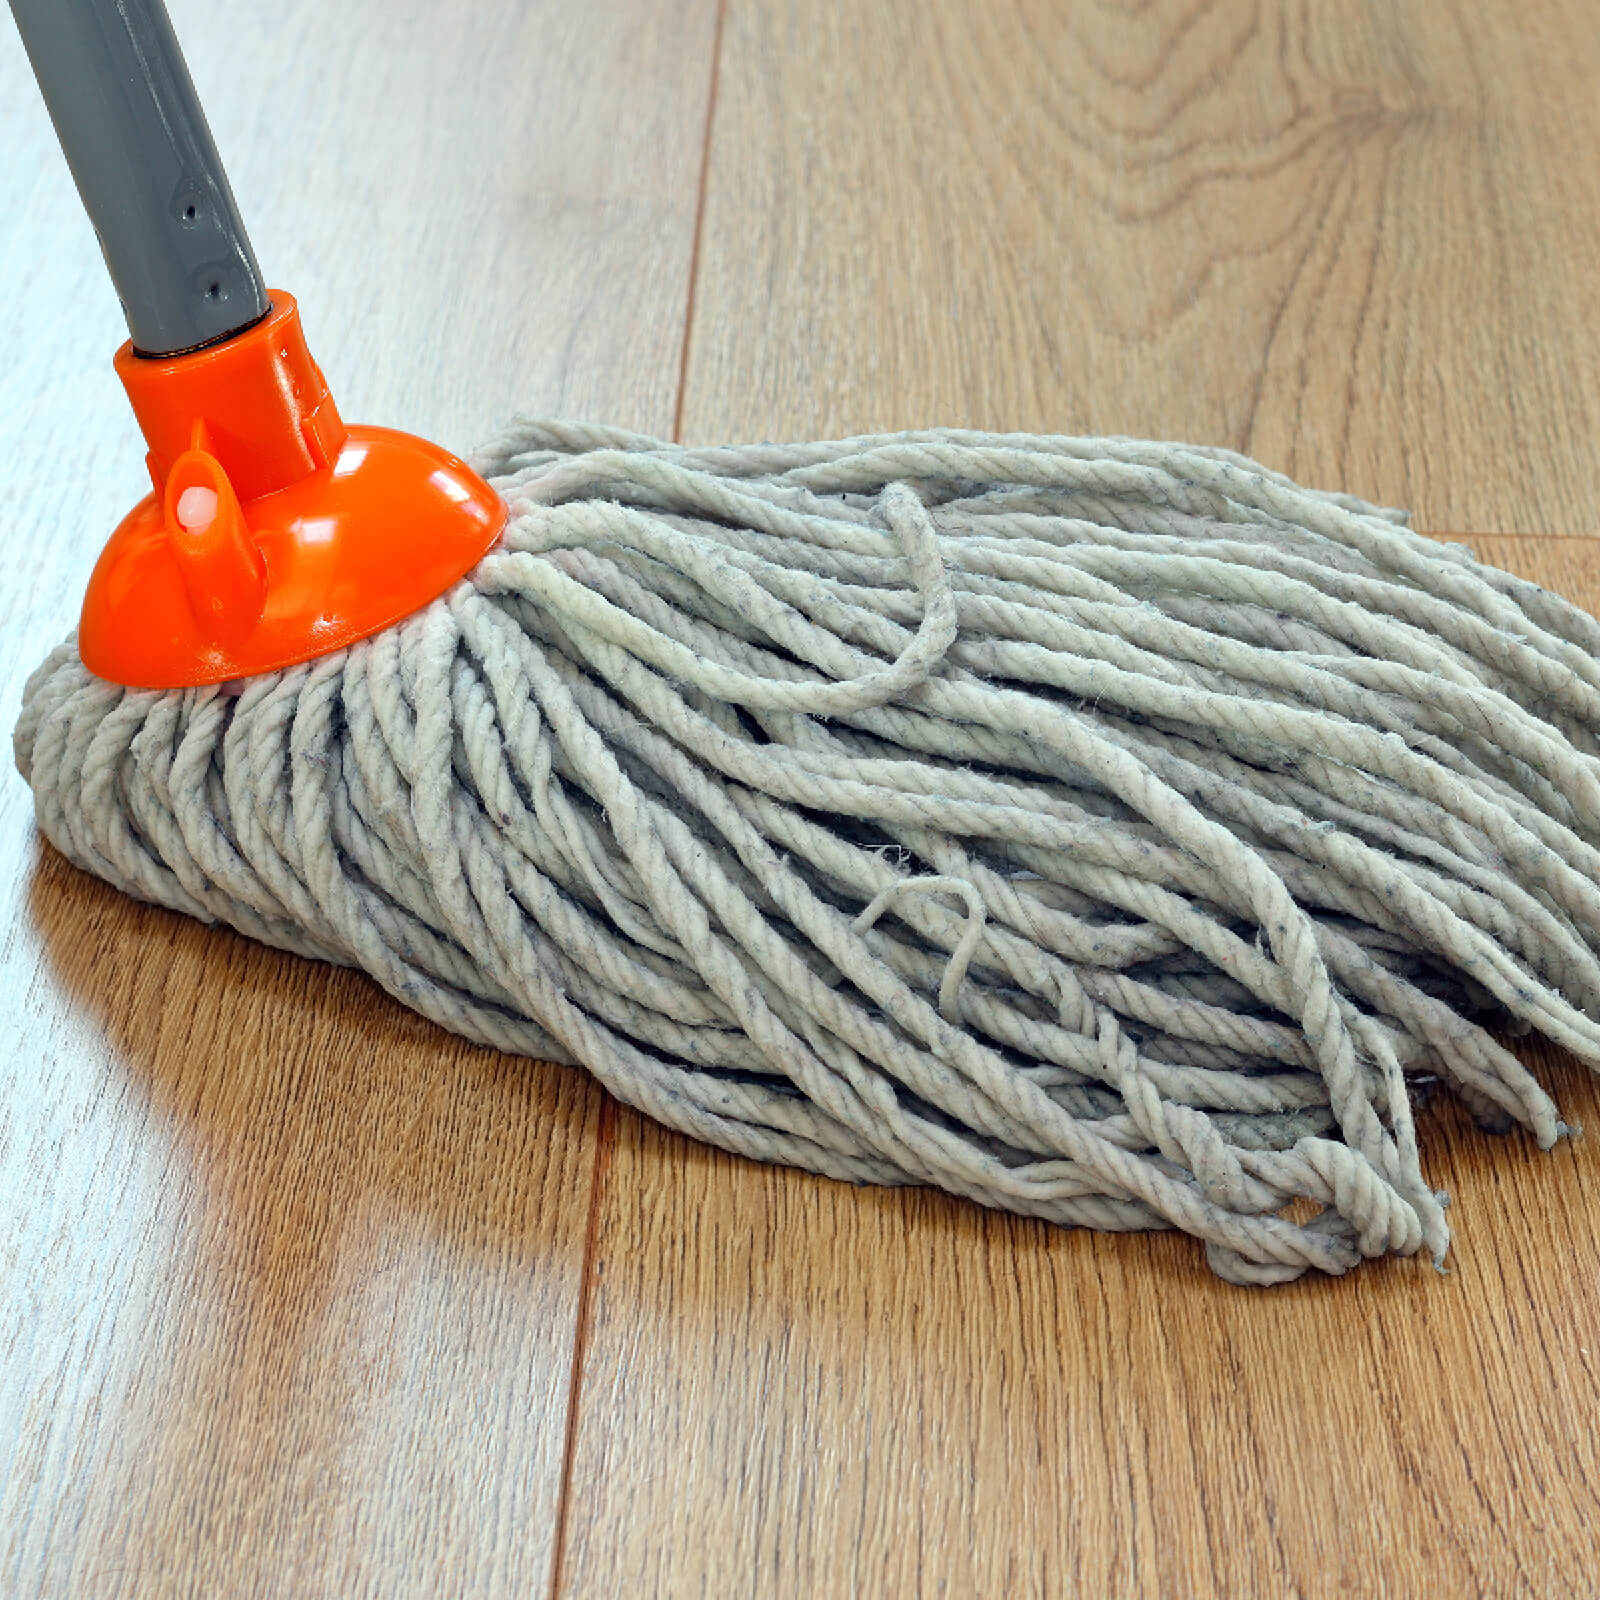 Mopping hardwood flooring | Design Waterville